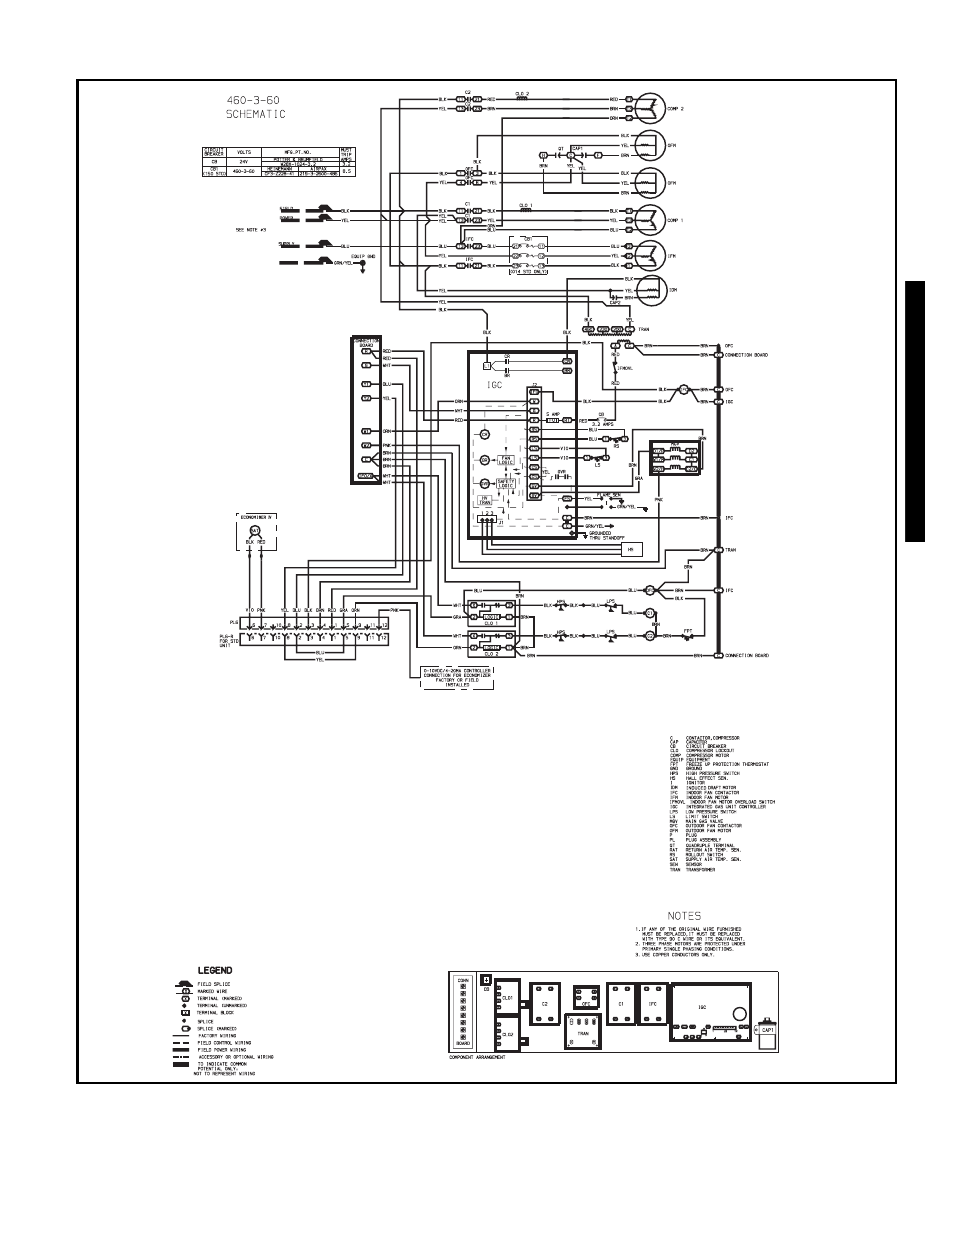 hight resolution of typical wiring schematics bryant 581c user manual page 139 298